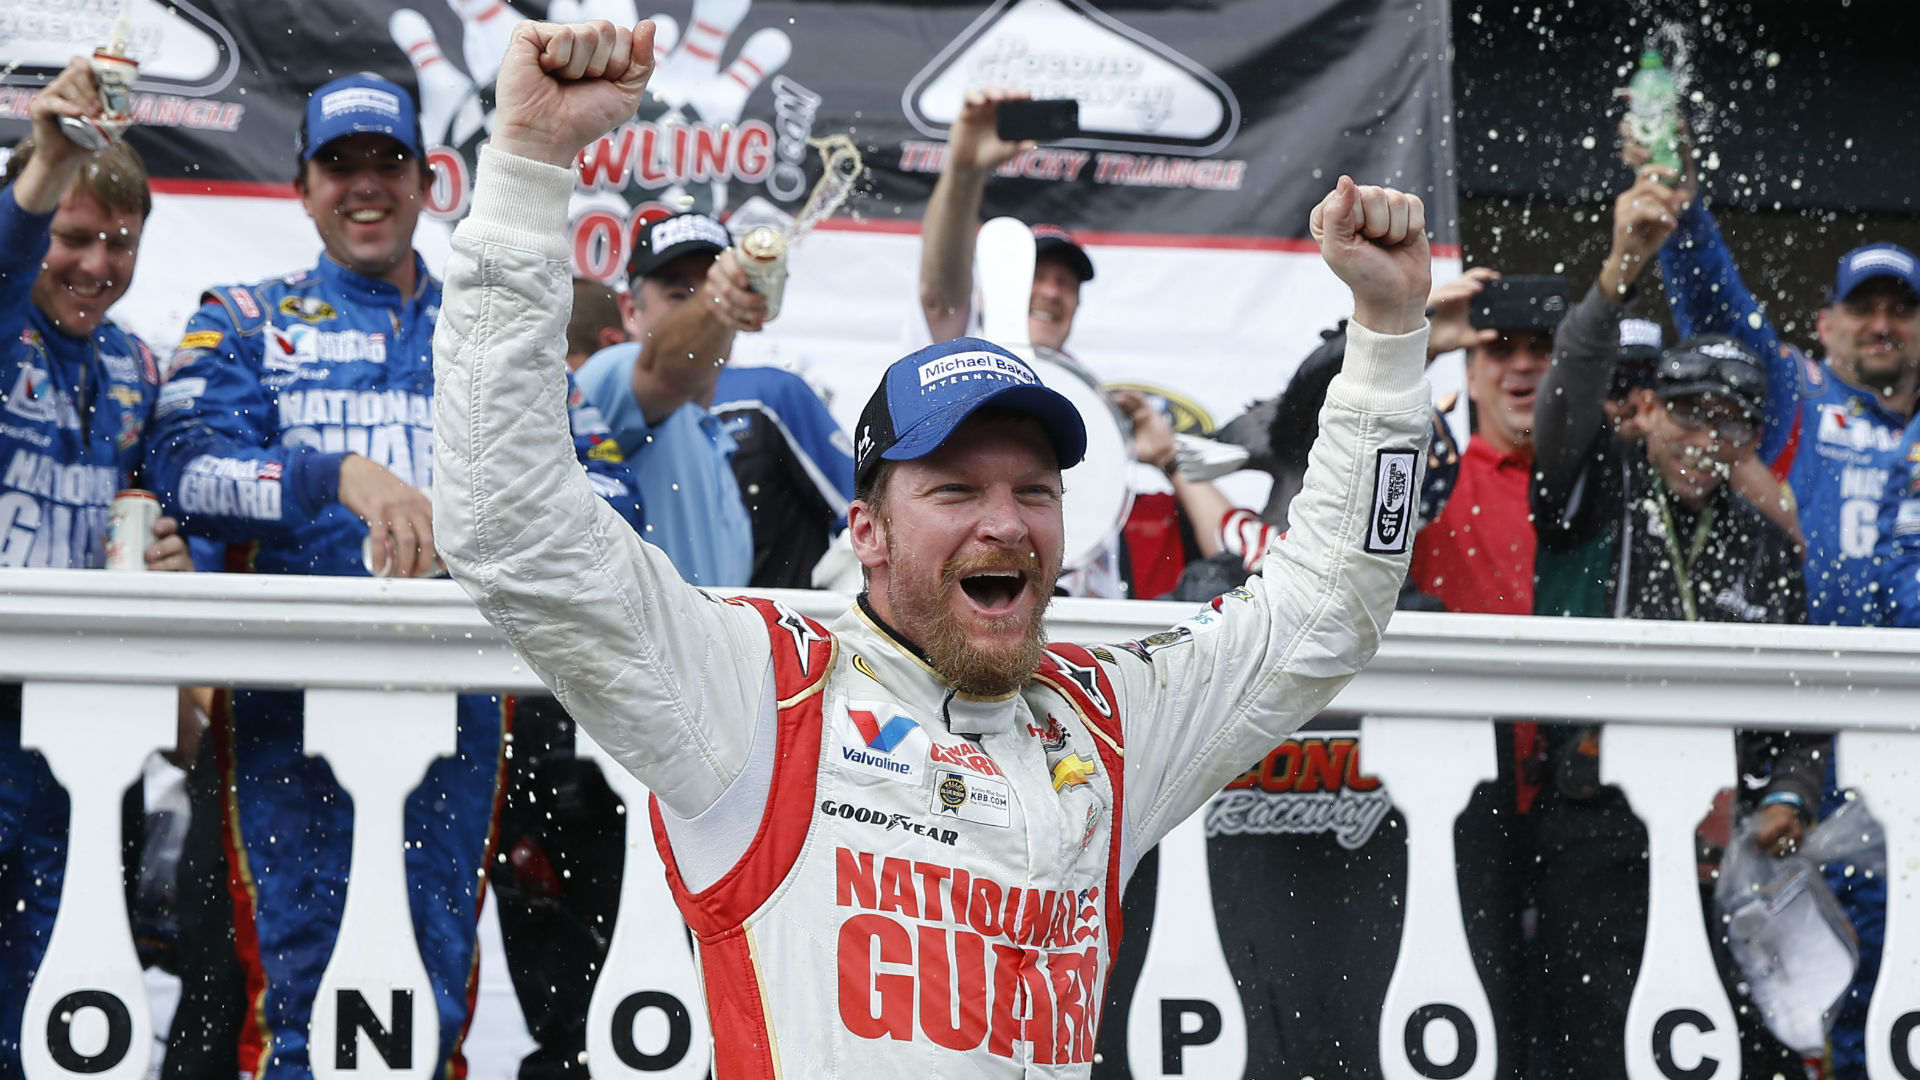 NASCAR at Pocono: Time, TV channel, online streaming, starting lineup